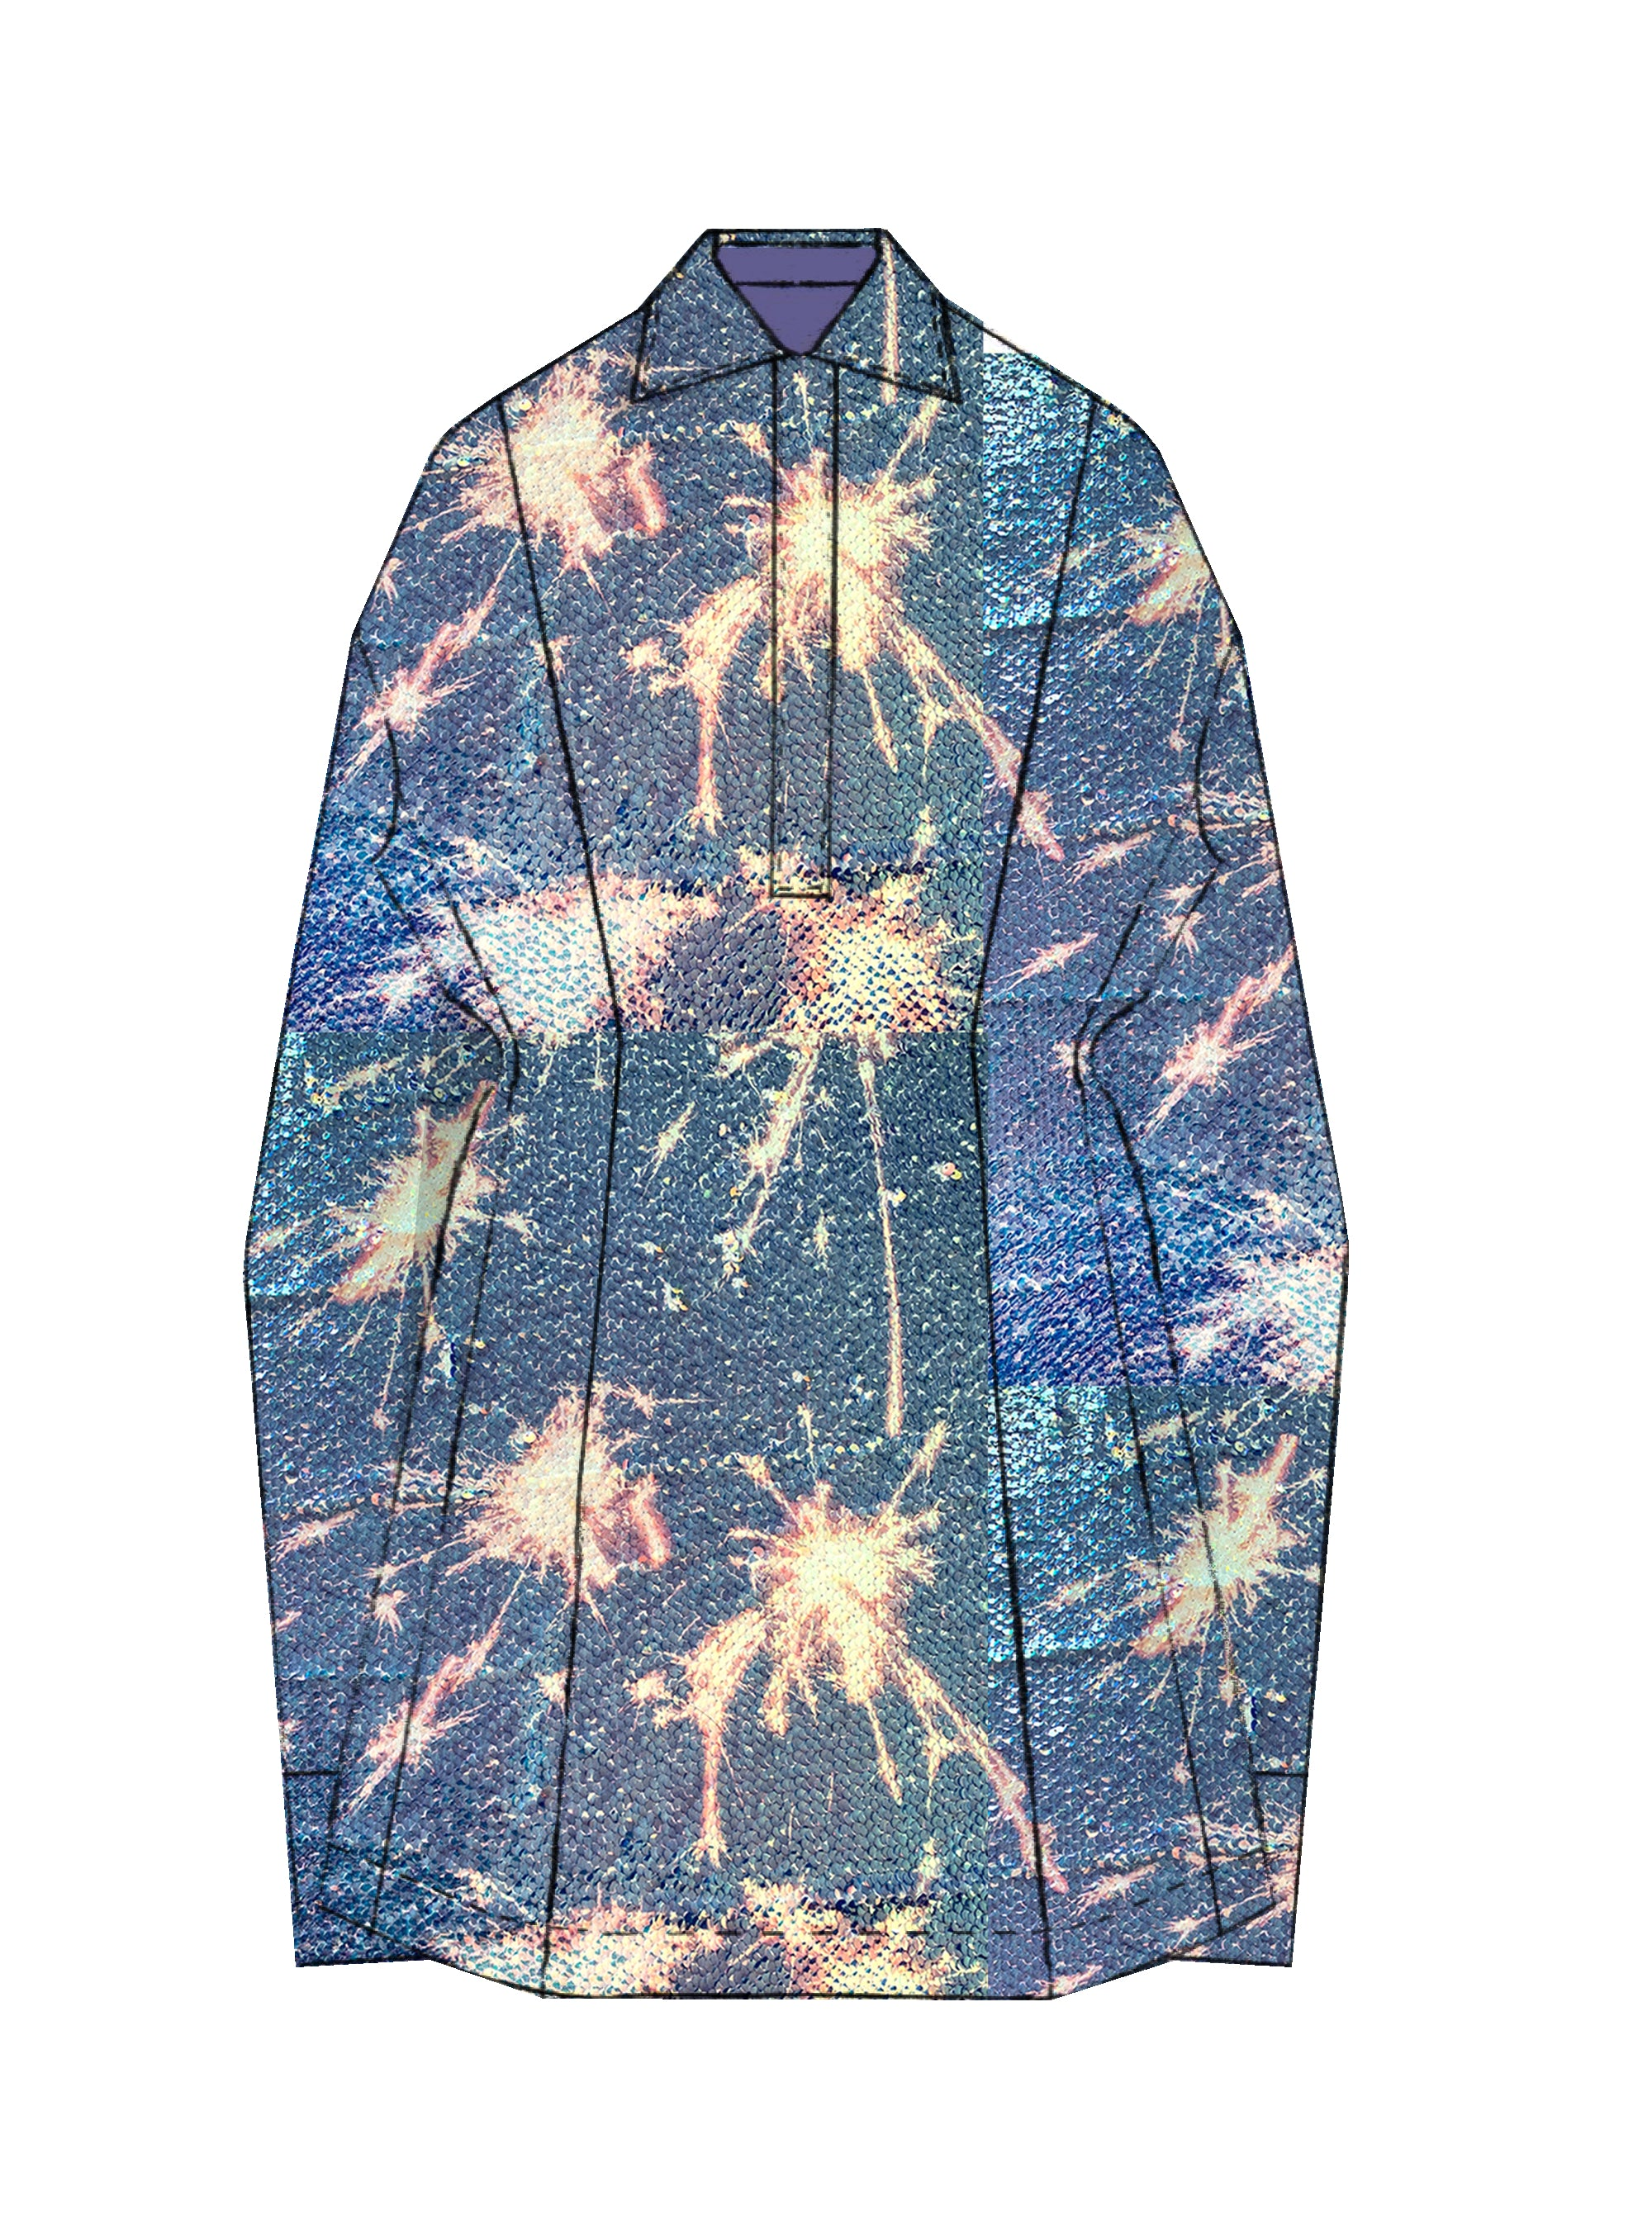 SS21 Printed Sparkler Sequins Slouchy Rugby Dress